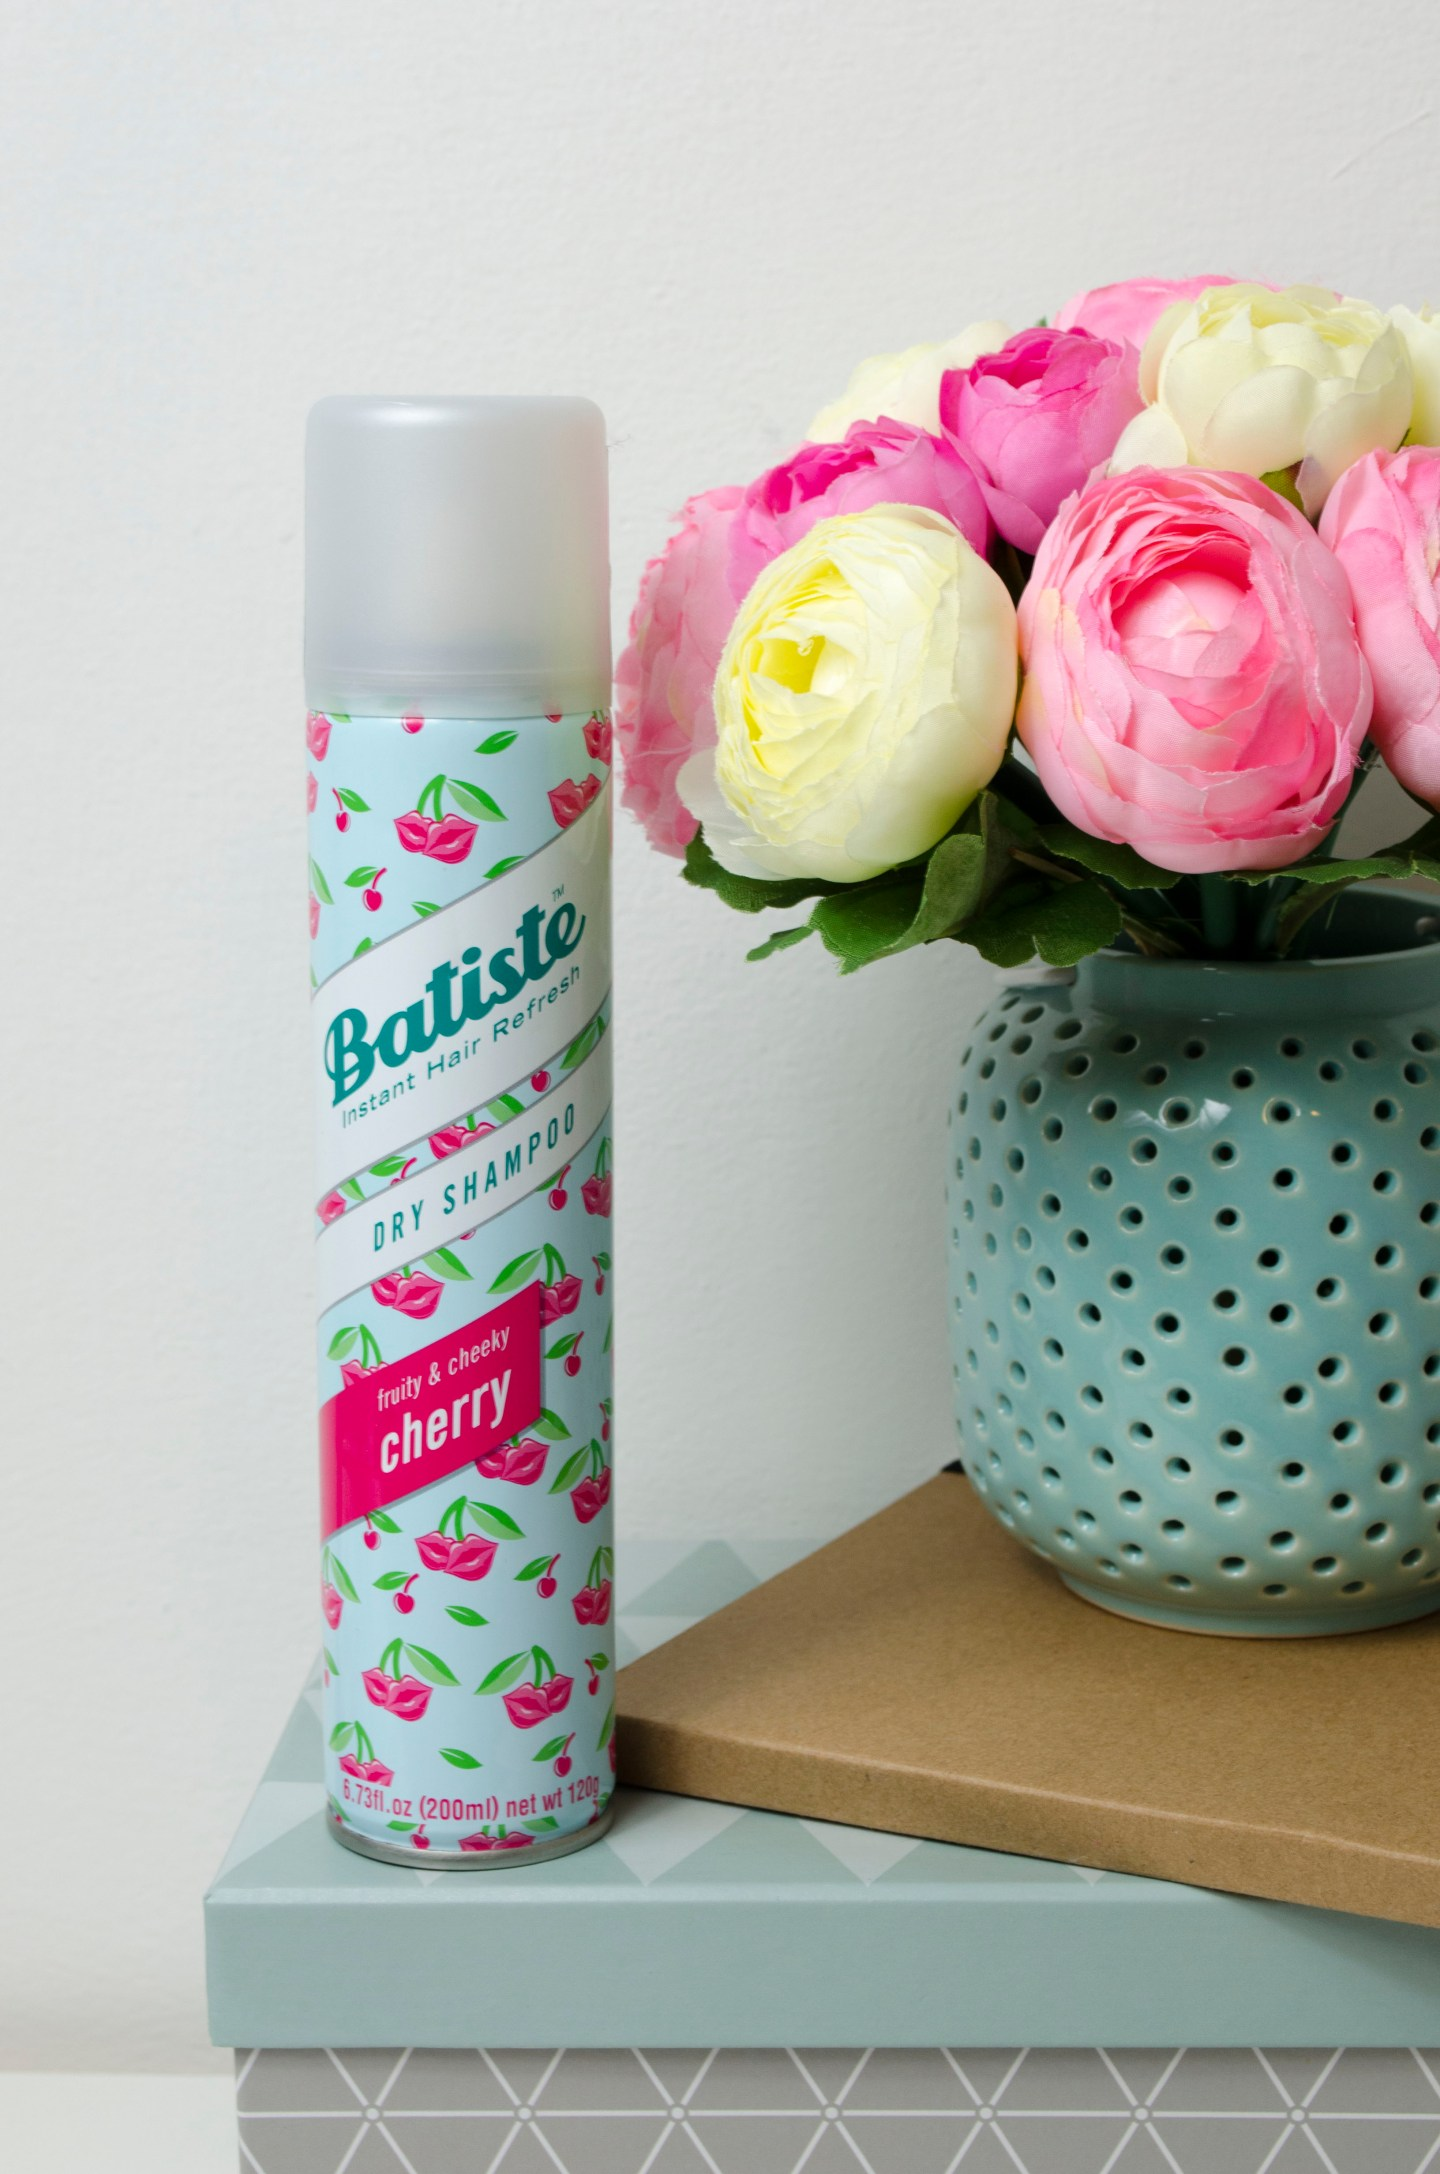 Batiste_Fruity_&_Cheecky_Cherry_Dry_Shampoo_Lilyscolours